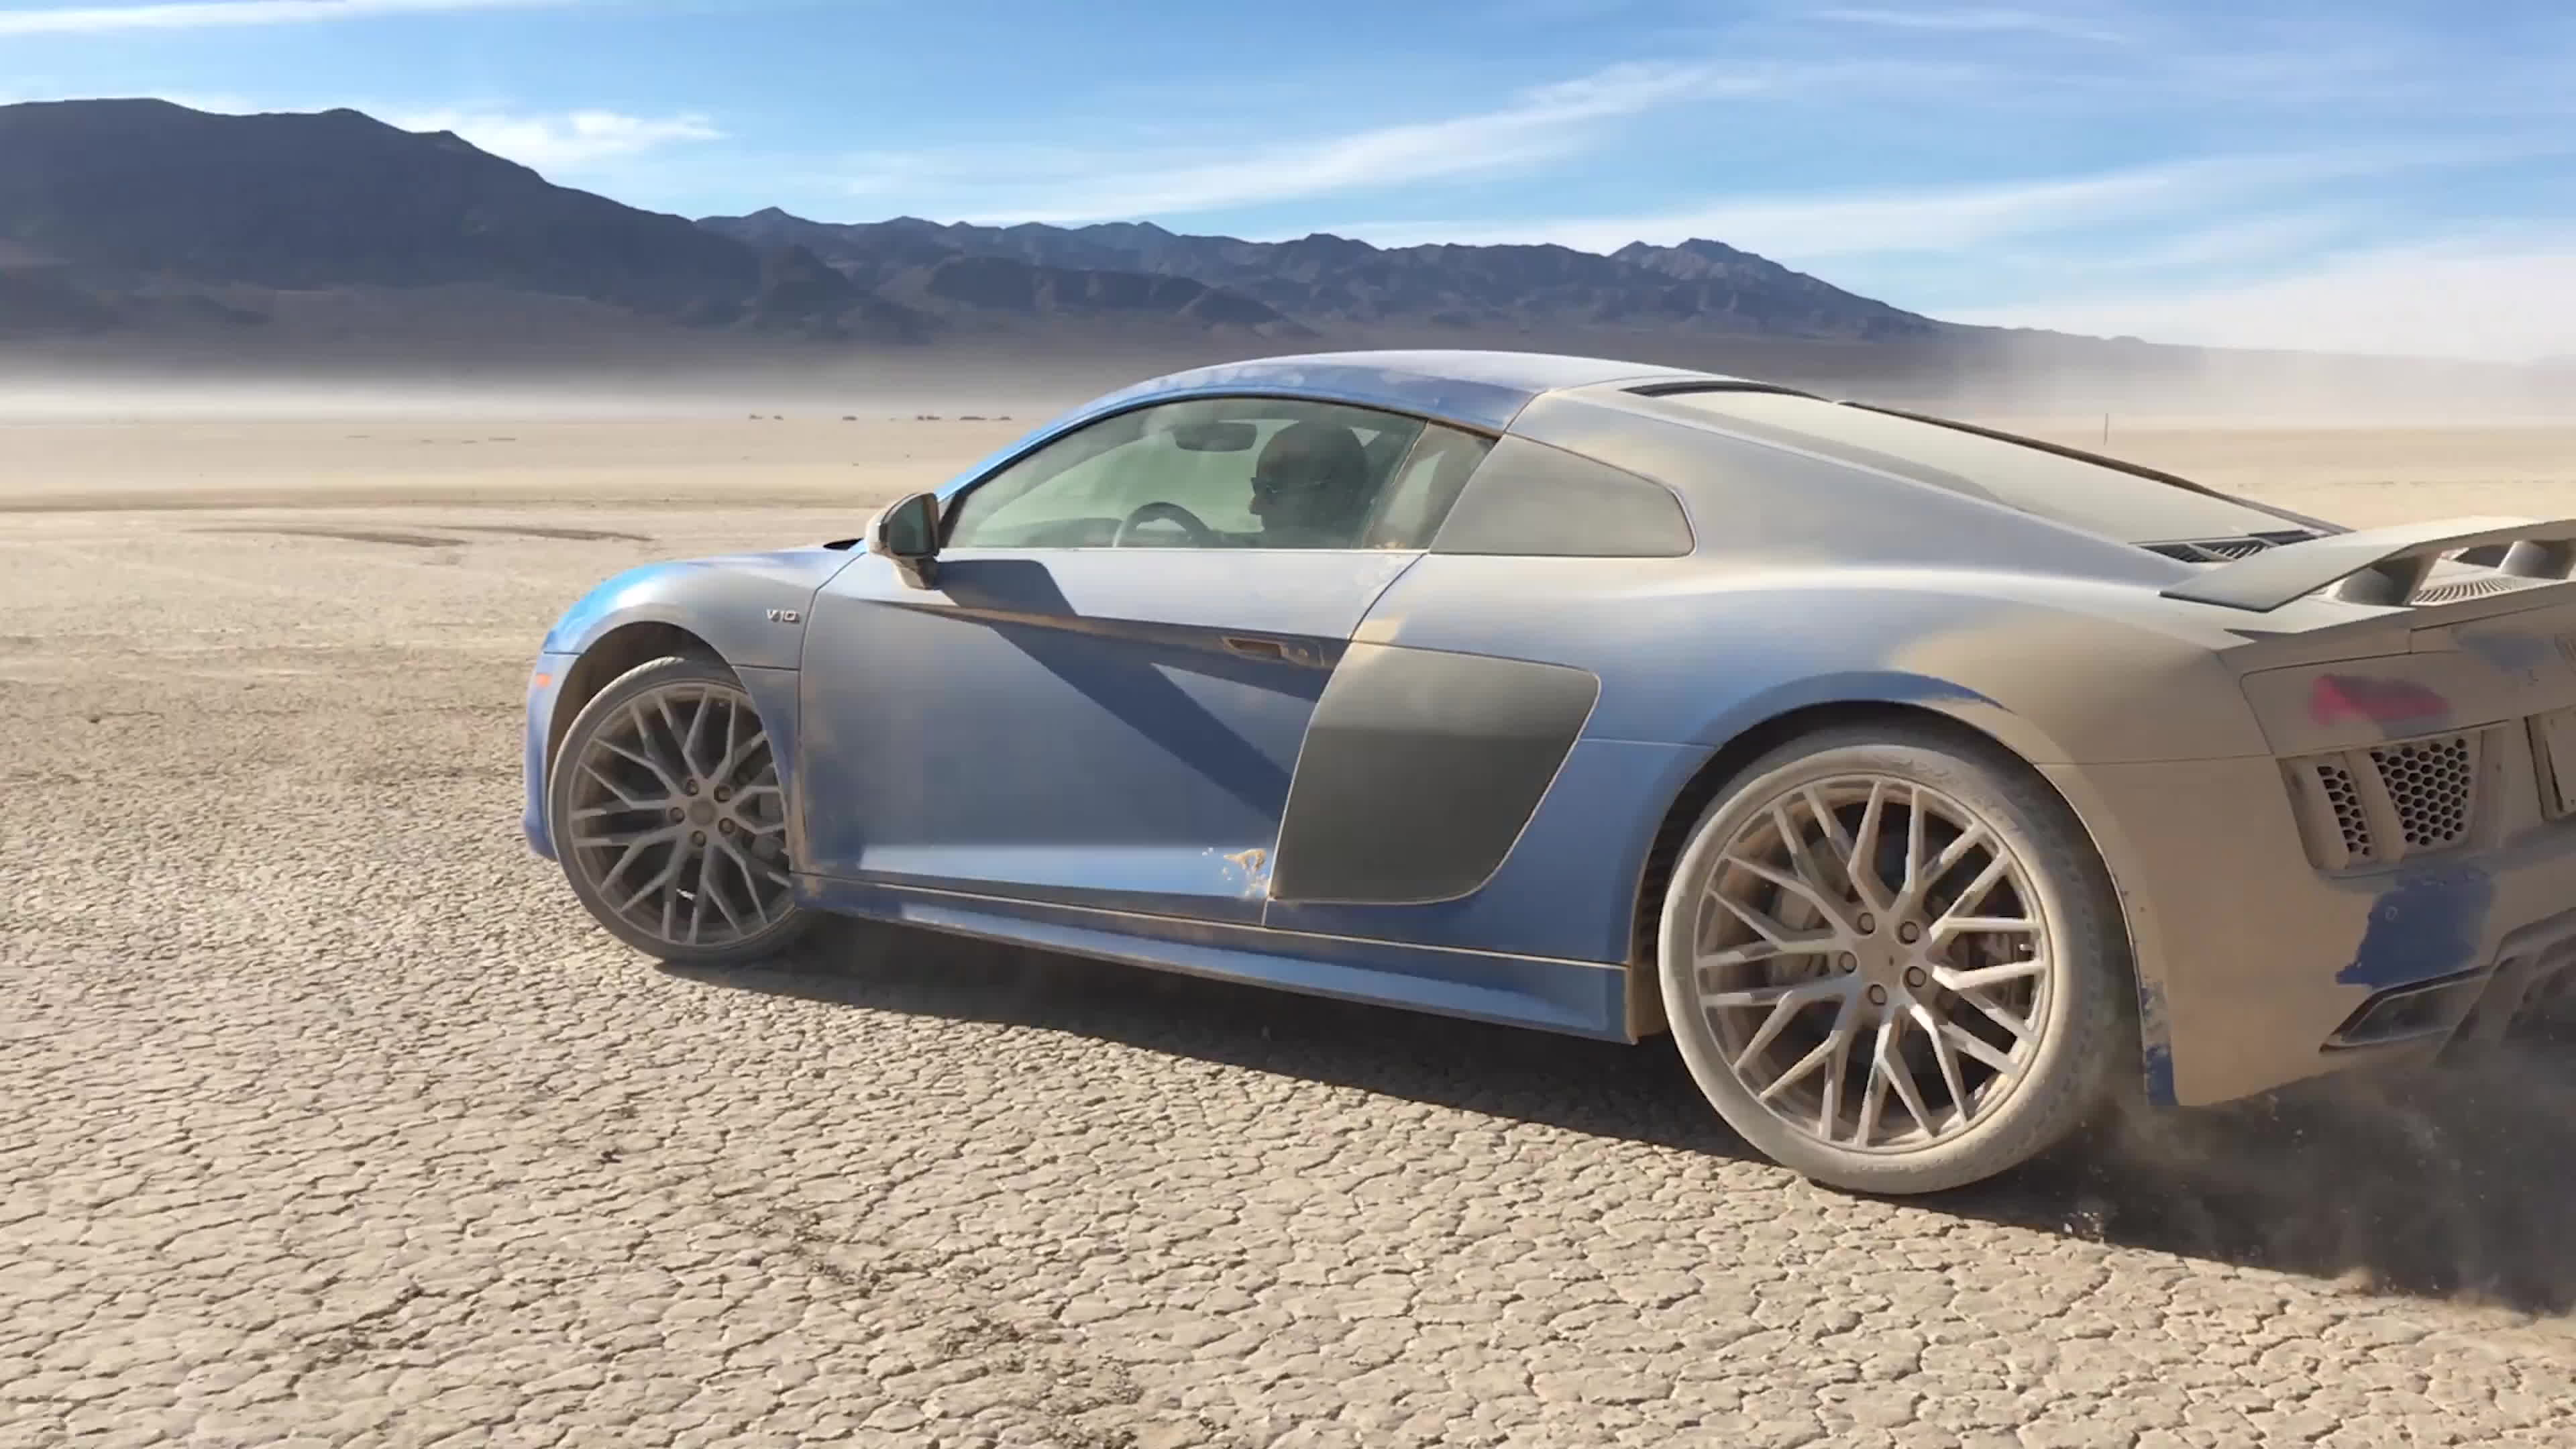 Drifting The 2017 Audi R8 V10 On A Dry Lake Bed Autoblog Interiors Inside Ideas Interiors design about Everything [magnanprojects.com]